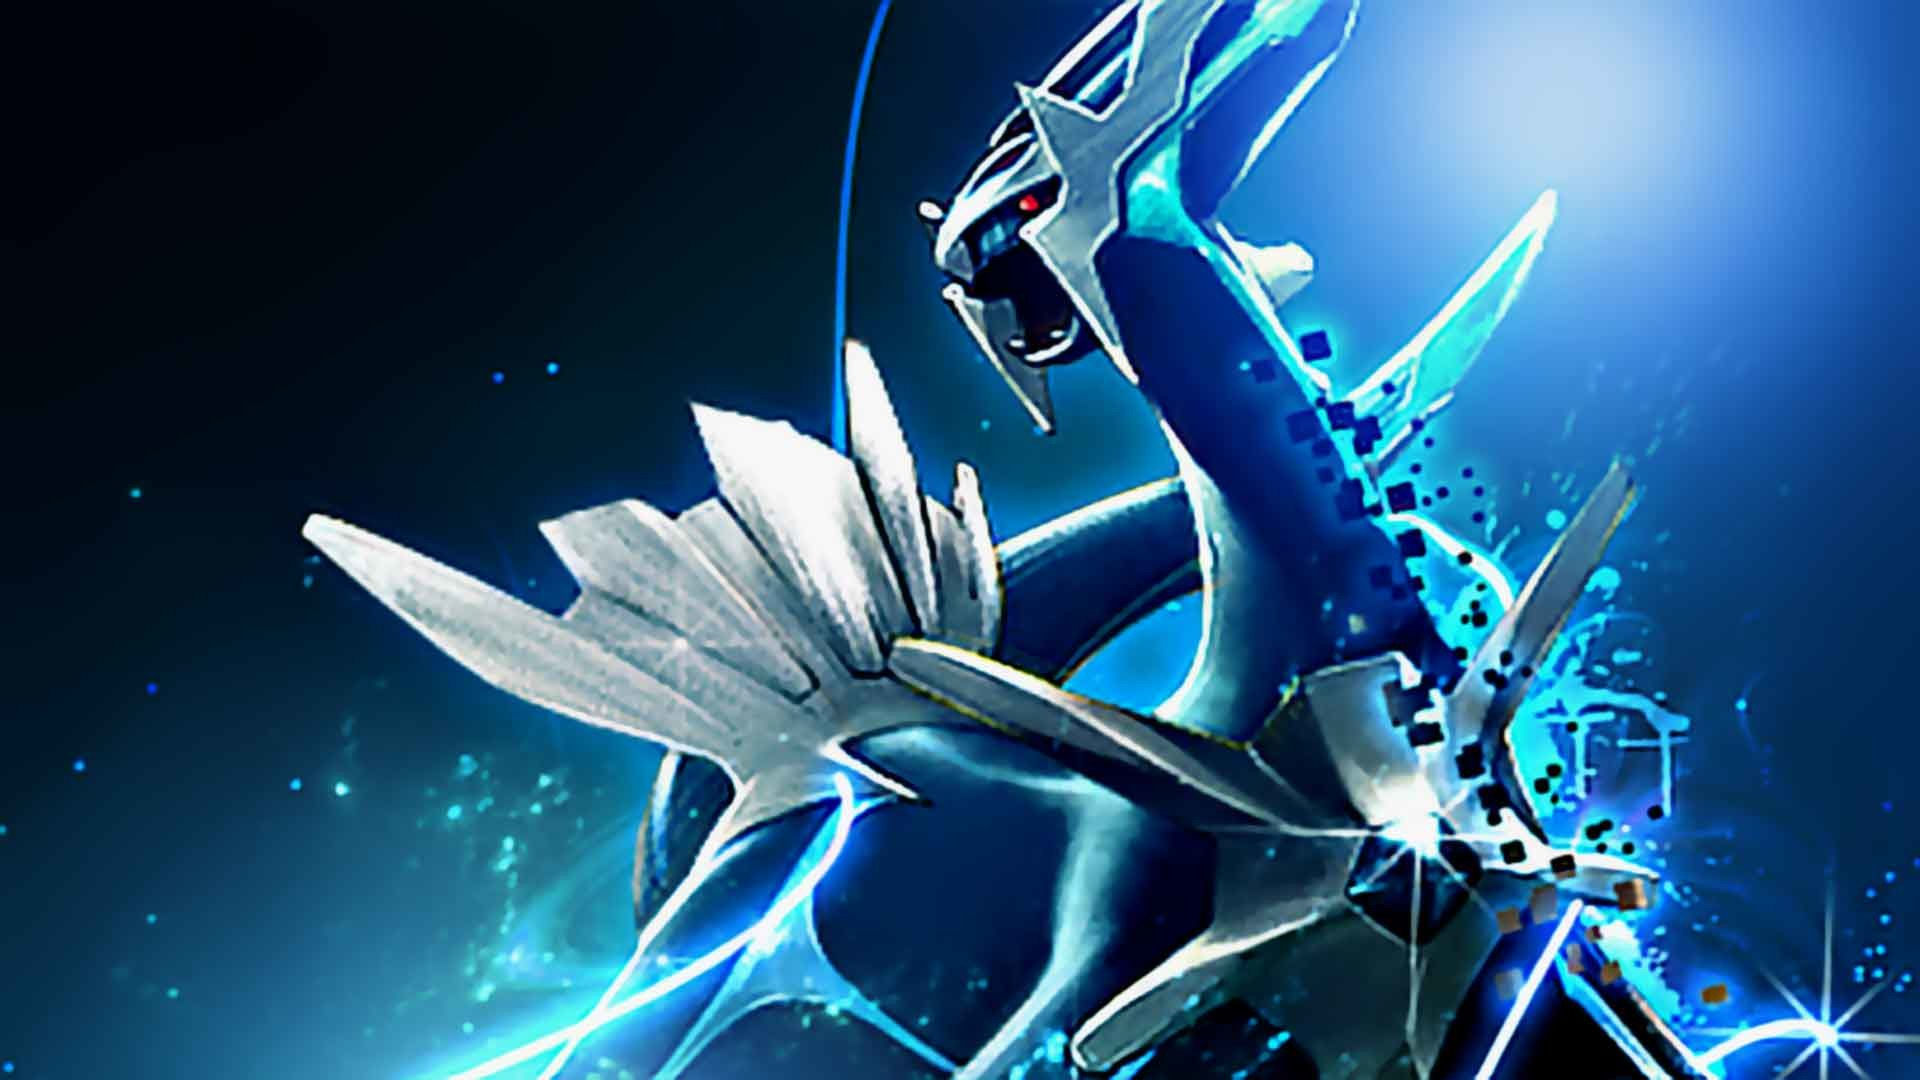 1920x1080 Wallpapers For > Pokemon Wallpaper Kyogre